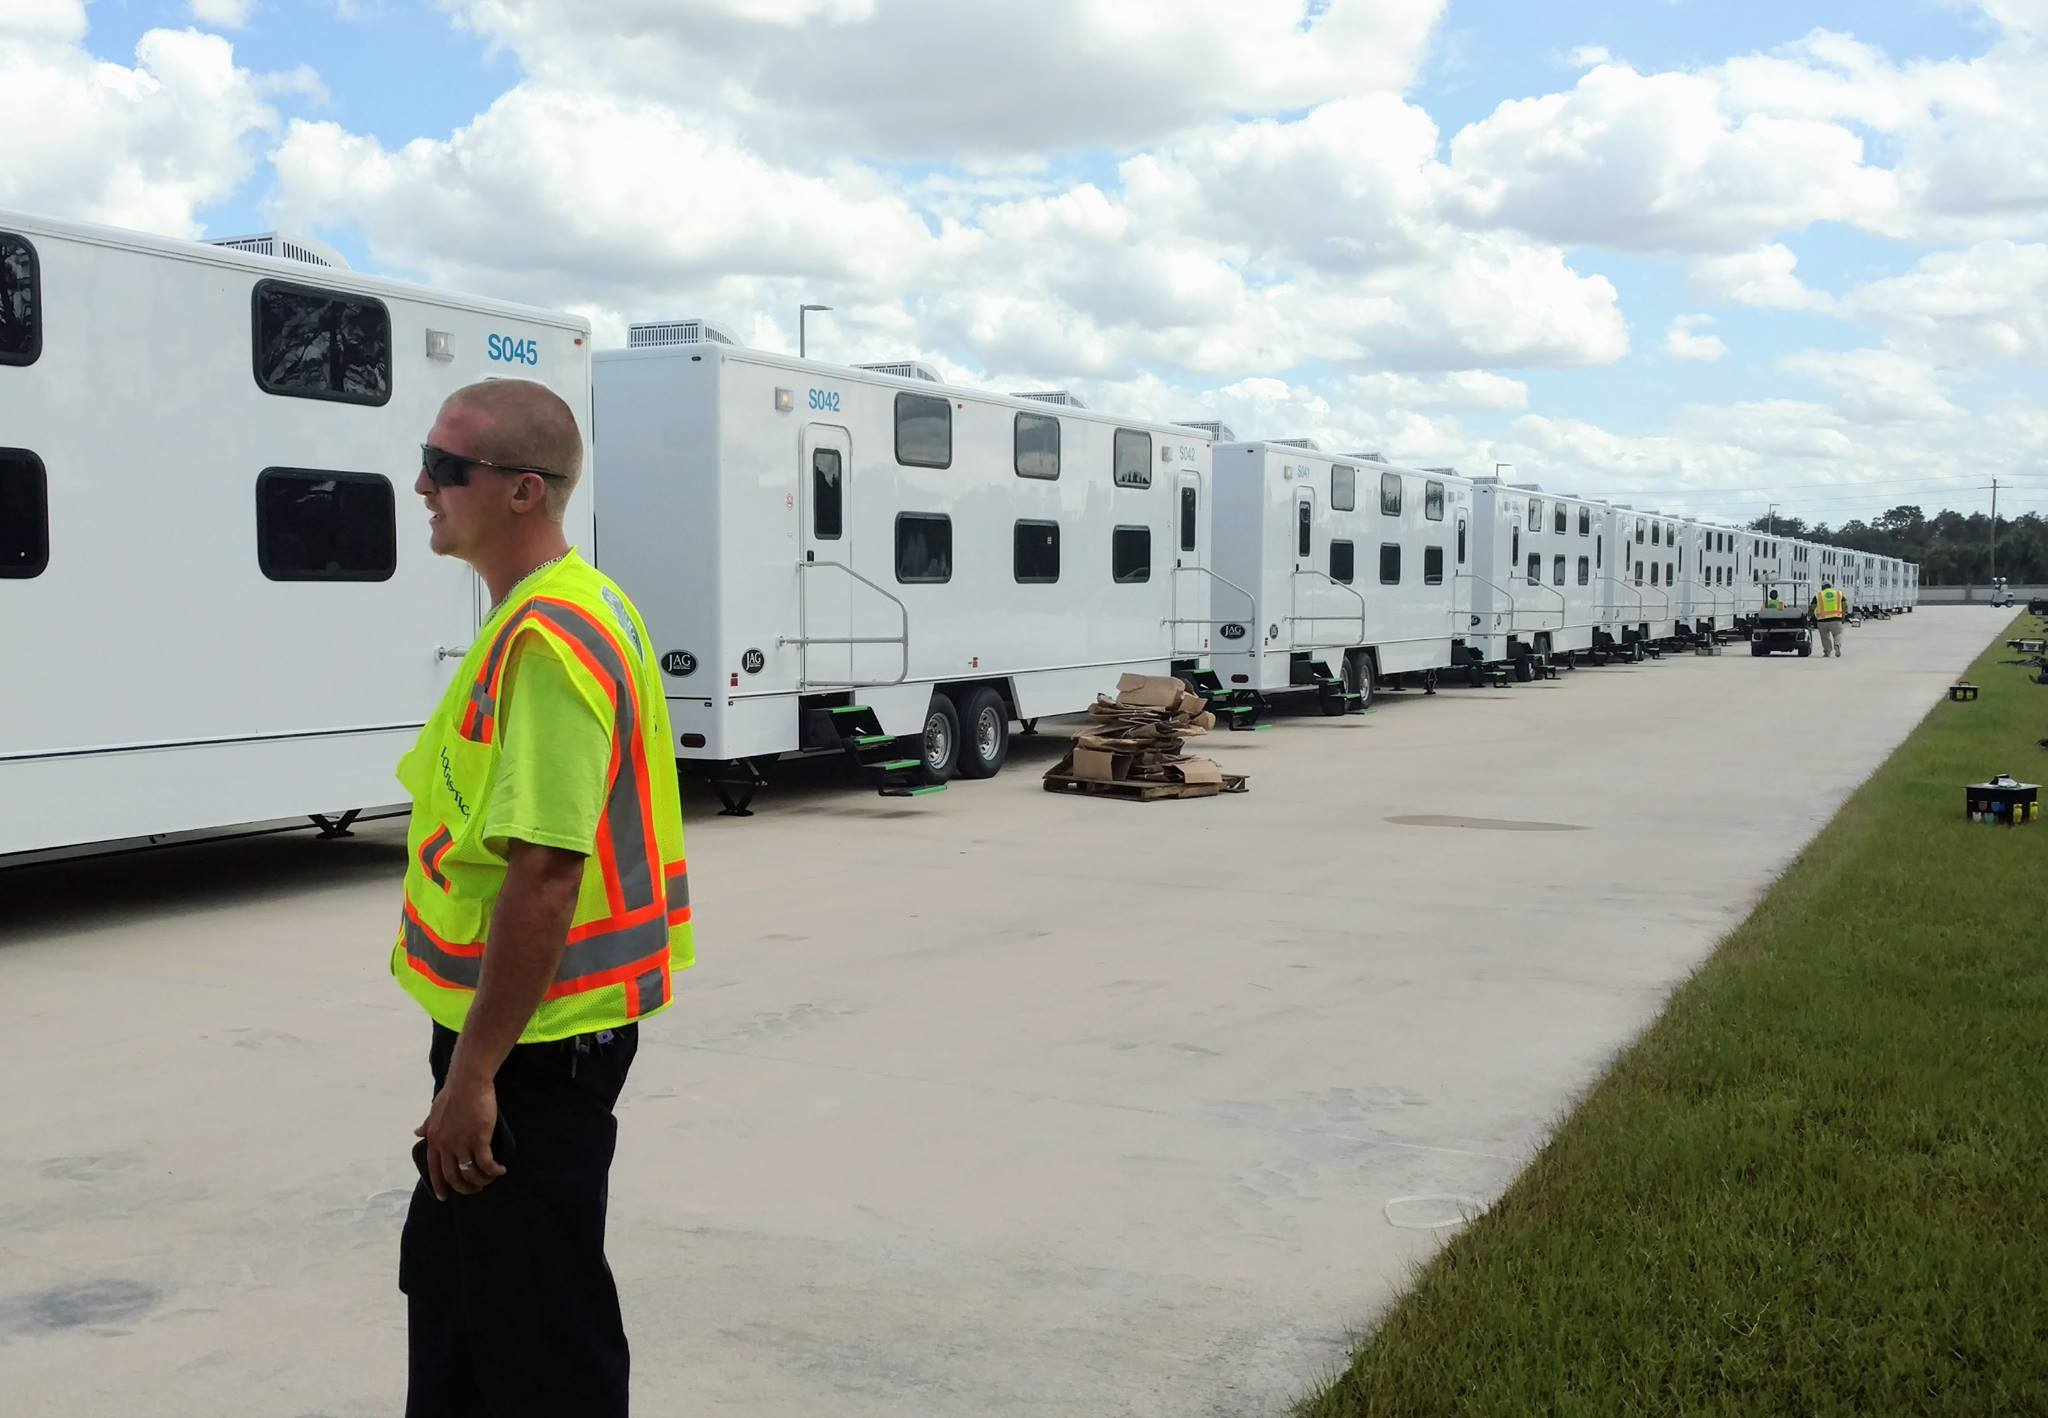 Jordan Pinkerton (Texas) is part of the crew setting up these units, 16 beds per unit 63 units, 13 shower and bath trucks.